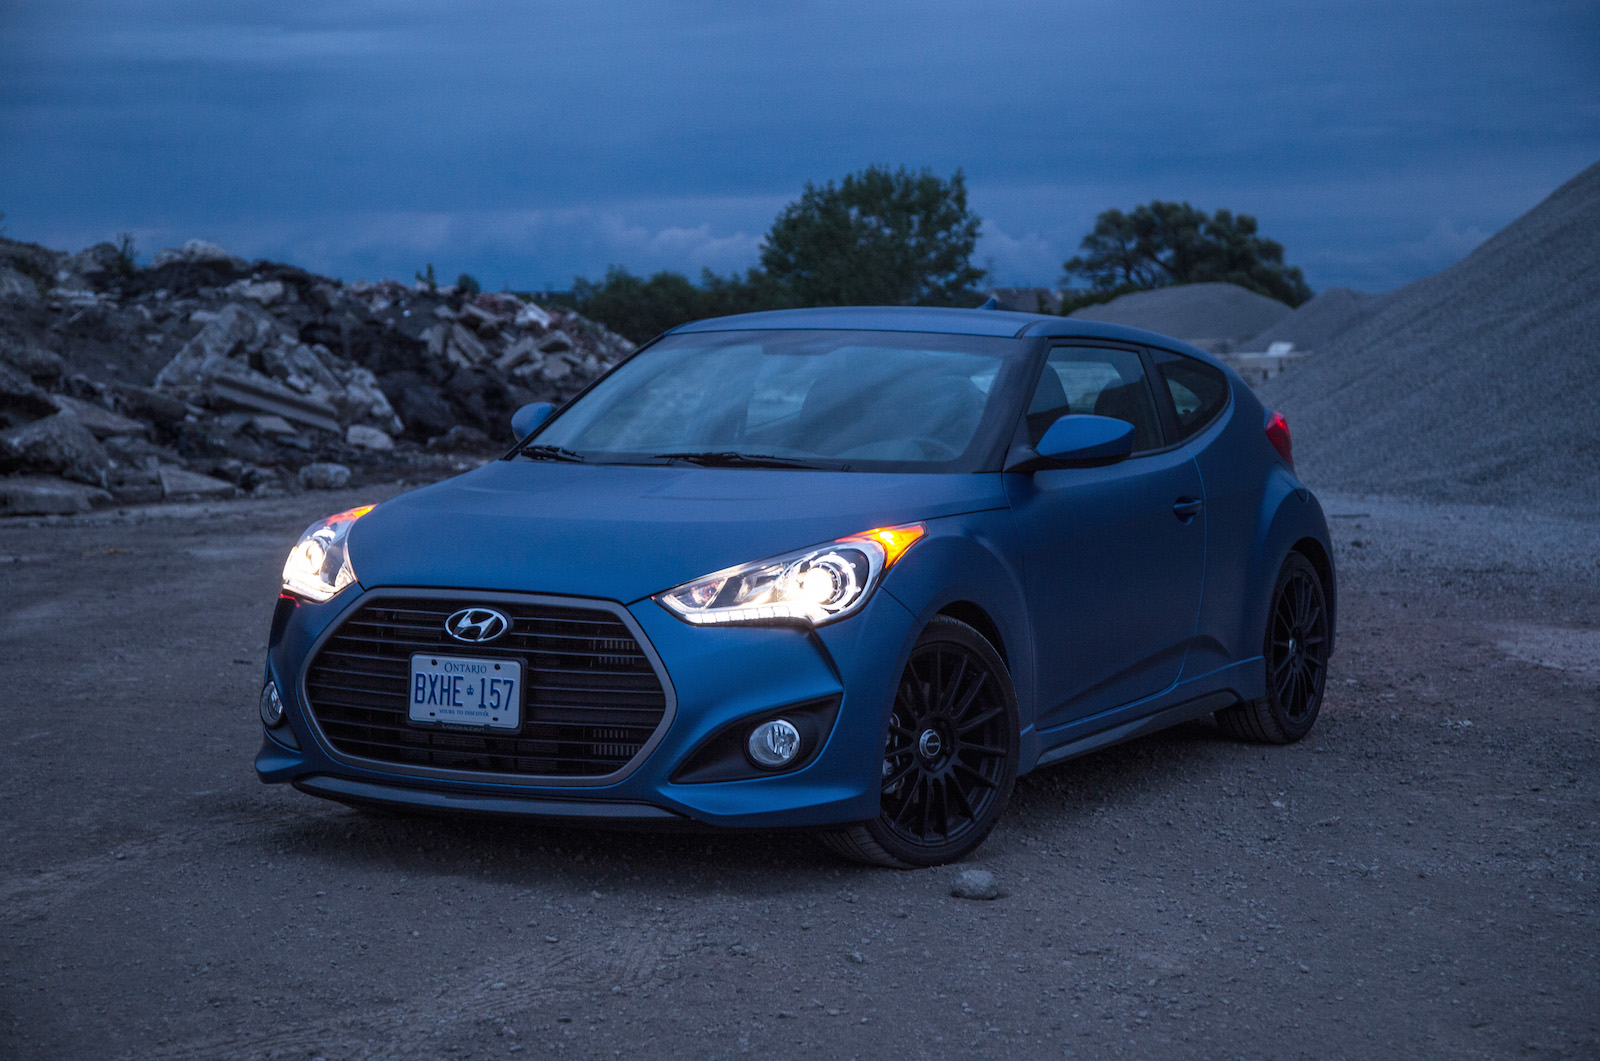 Review: 2016 Hyundai Veloster Turbo Rally Edition | Canadian Auto Review